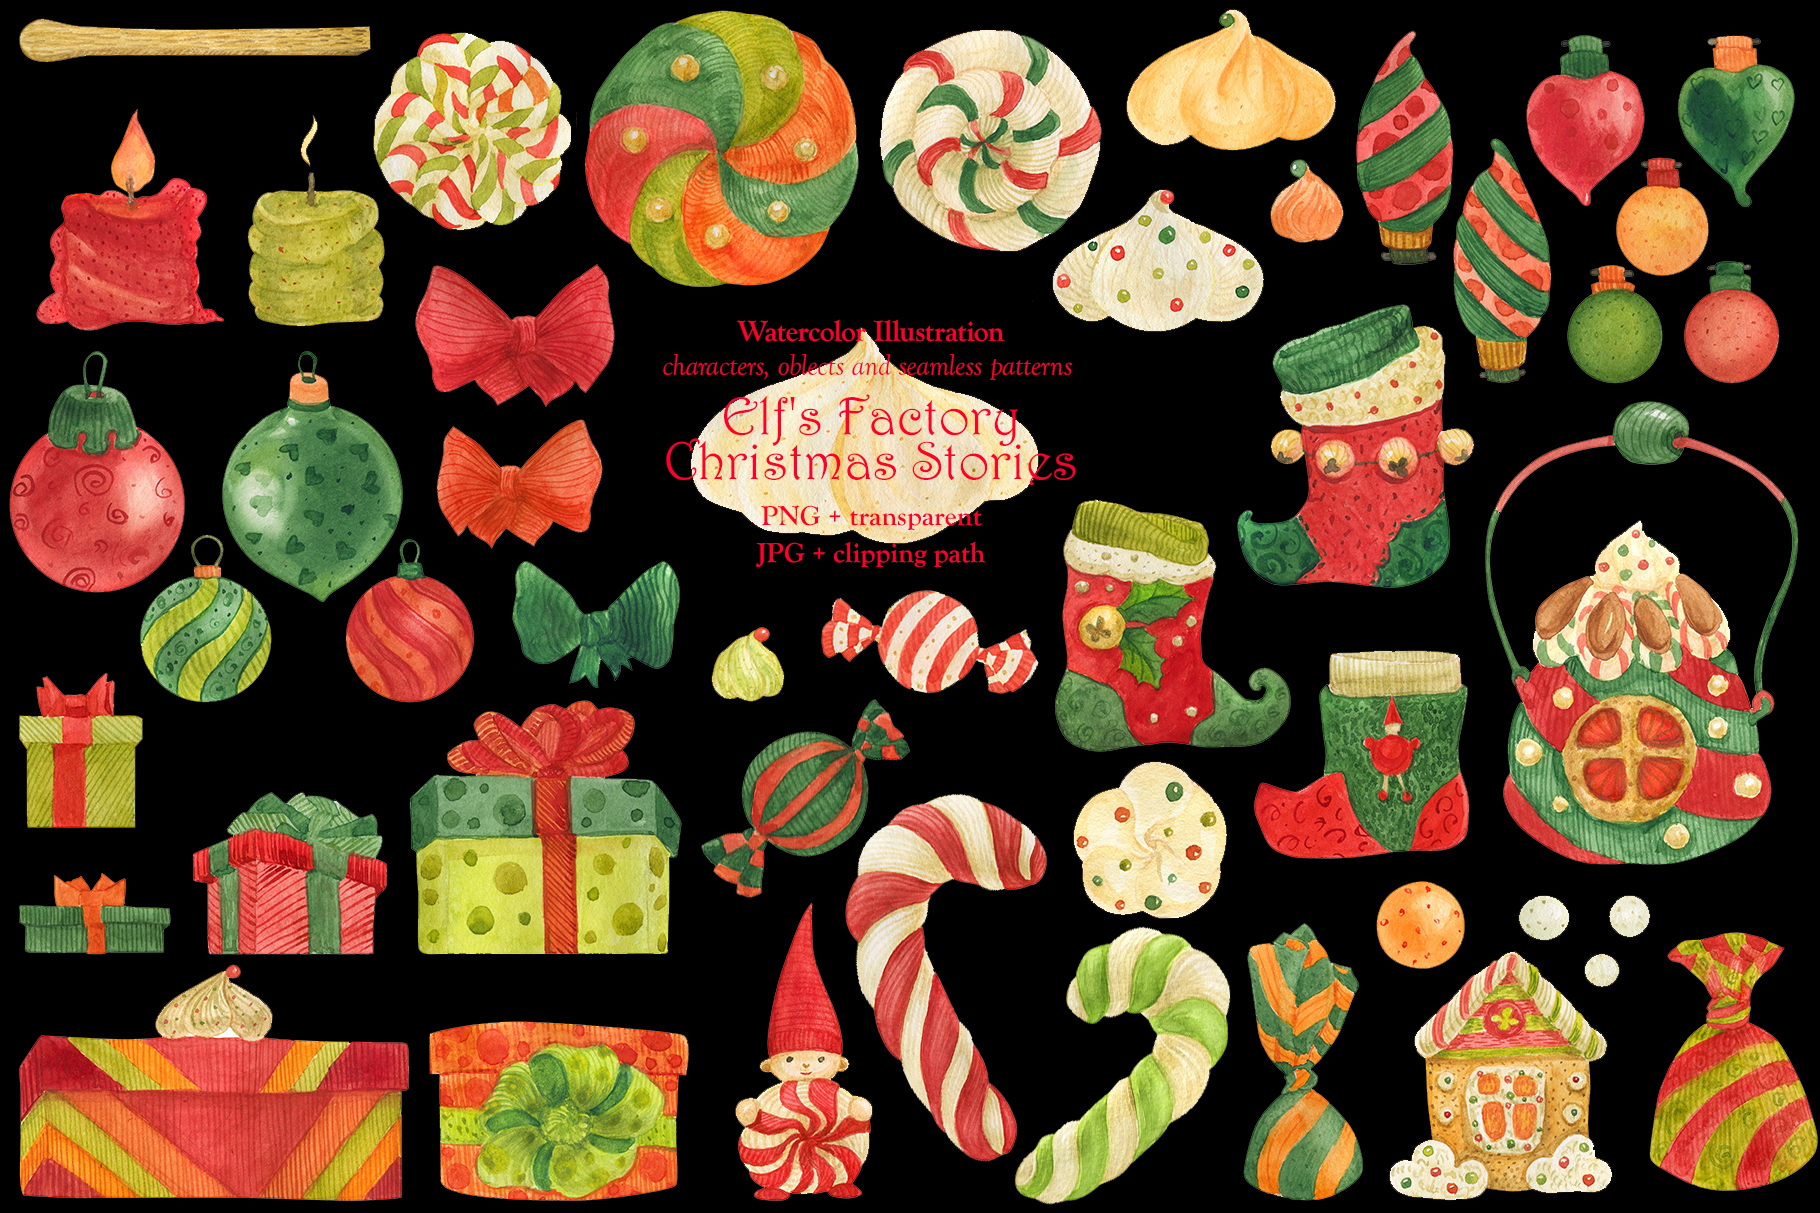 Elf's Factory Christmas Stories example image 13